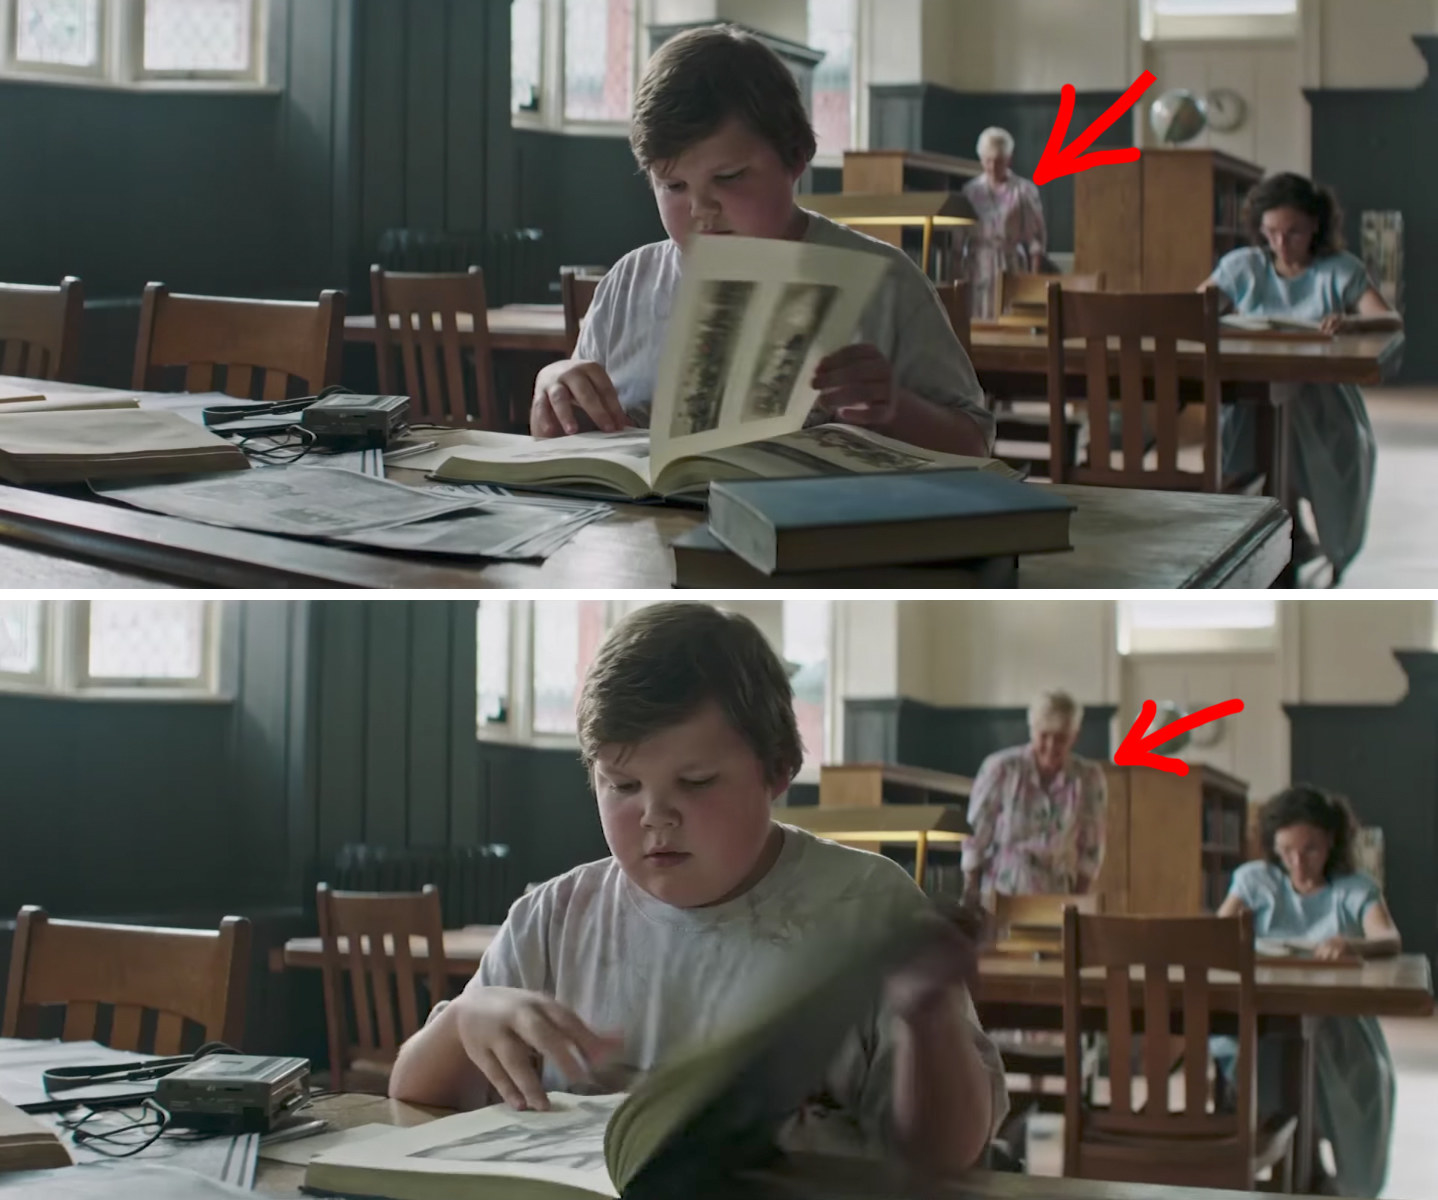 1. When Ben Is Reading Through A Book In The Library, Thereu0027s A Terrifying  Elderly Woman Lurking In The Background With A Sinister Grin On Her Face.